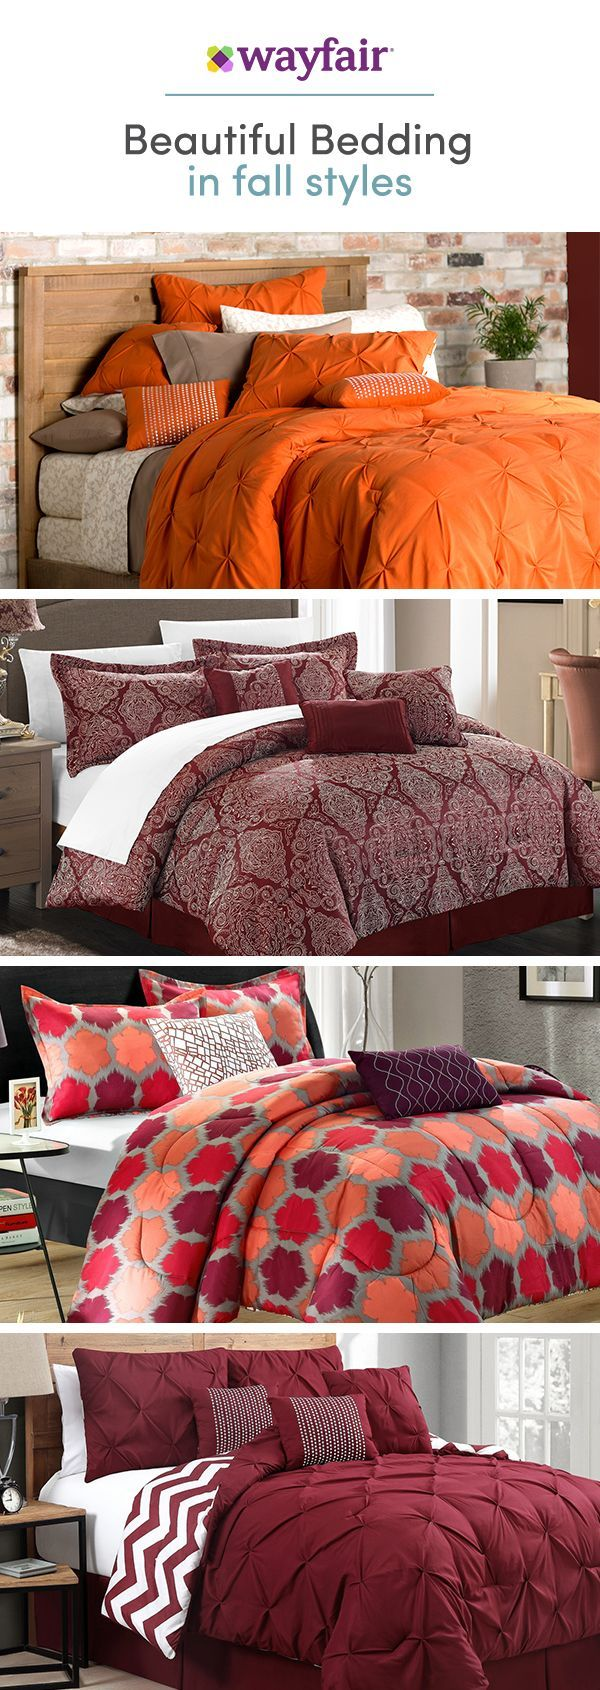 Looking To Upgrade Your Bedroom To Sanctuary Status And Stay On Budget? Make  Your Bedroom Pop With Our Cozy Collection Of Bedding Sets!